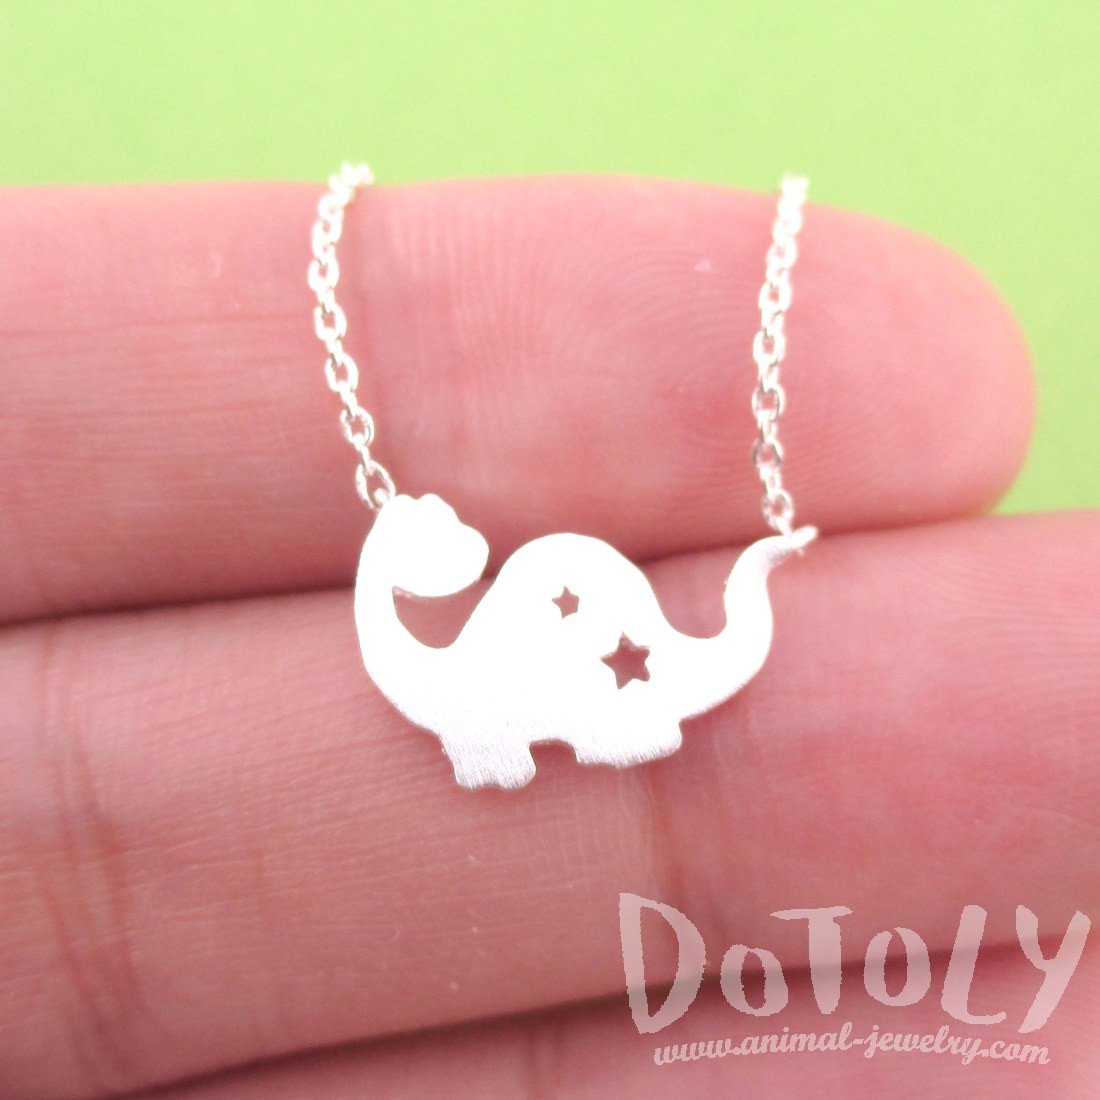 Apatosaurus Dinosaur with Star Cut Out Shaped Charm Necklace in Silver